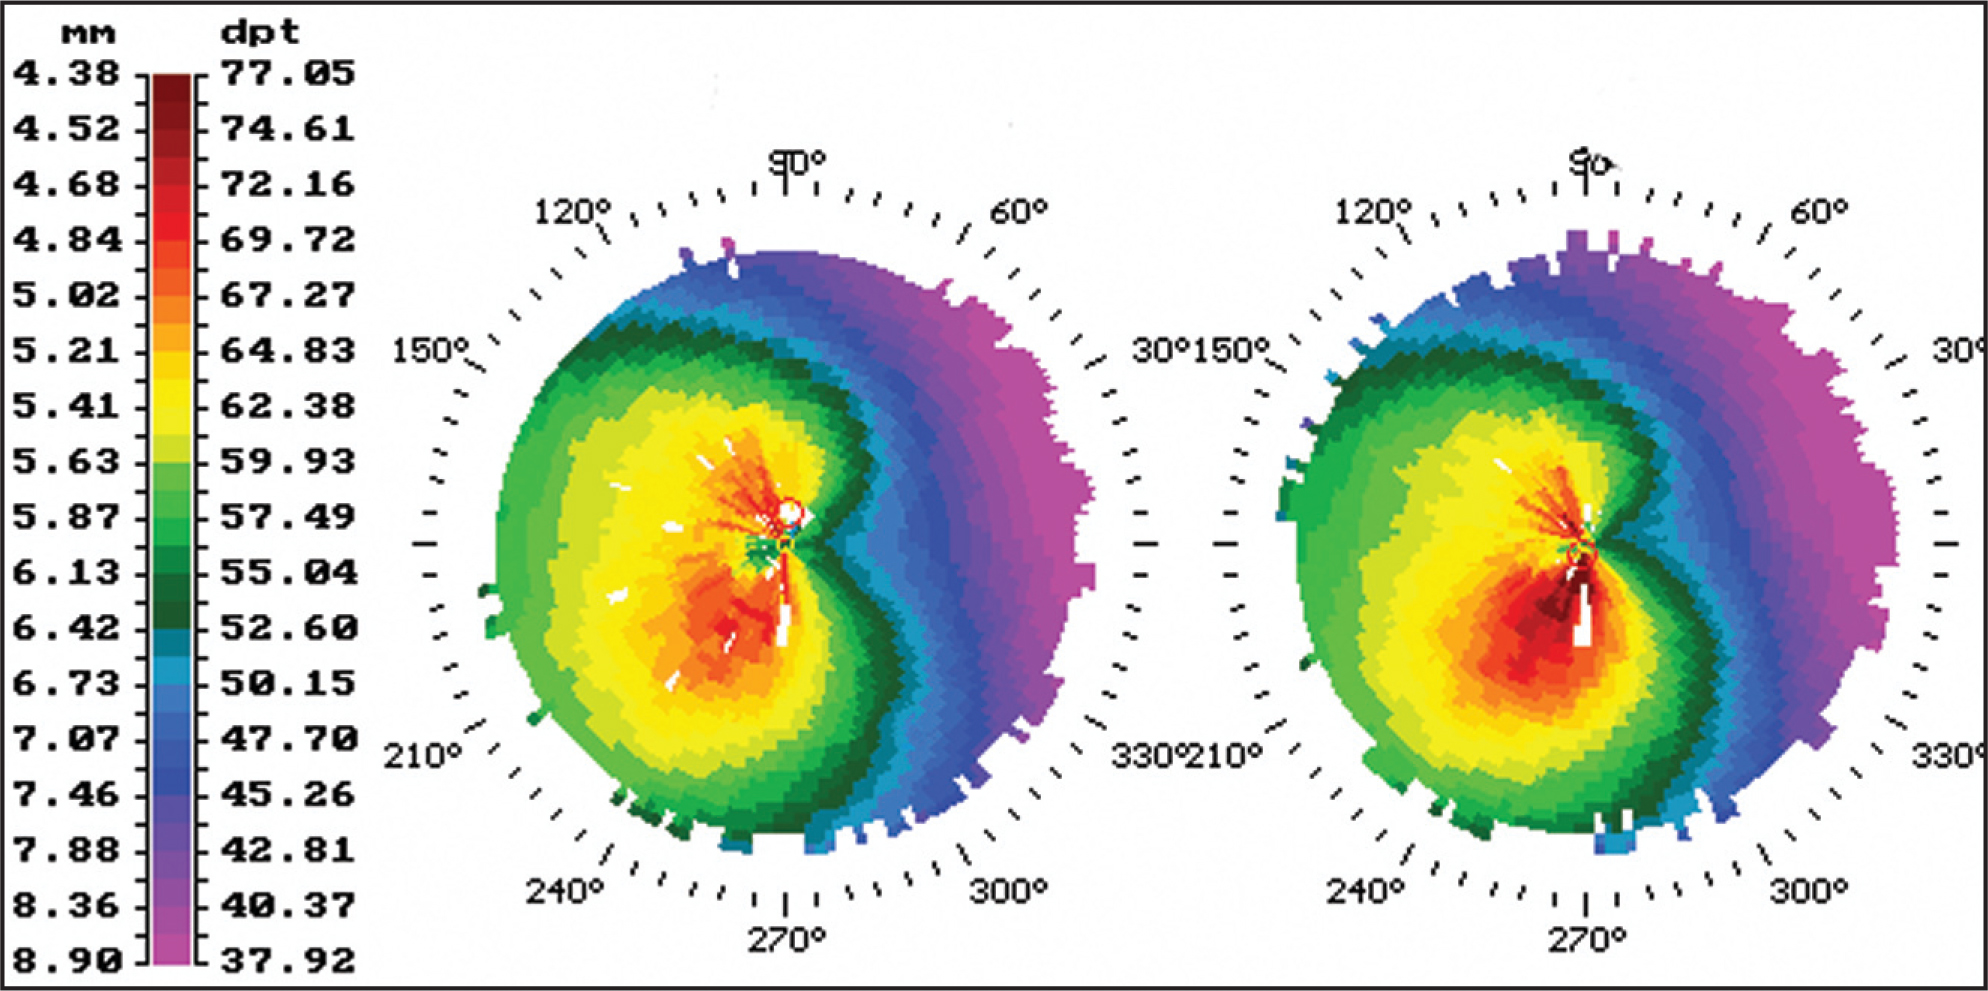 Corneal Topography (Technomed C–Scan, Baesweiler, Germany) 6 Months Before (left) and Immediately Before (right) Corneal Collagen Cross-Linking Treatment Showing the Progression of Keratoconus in a 6-Month Period.